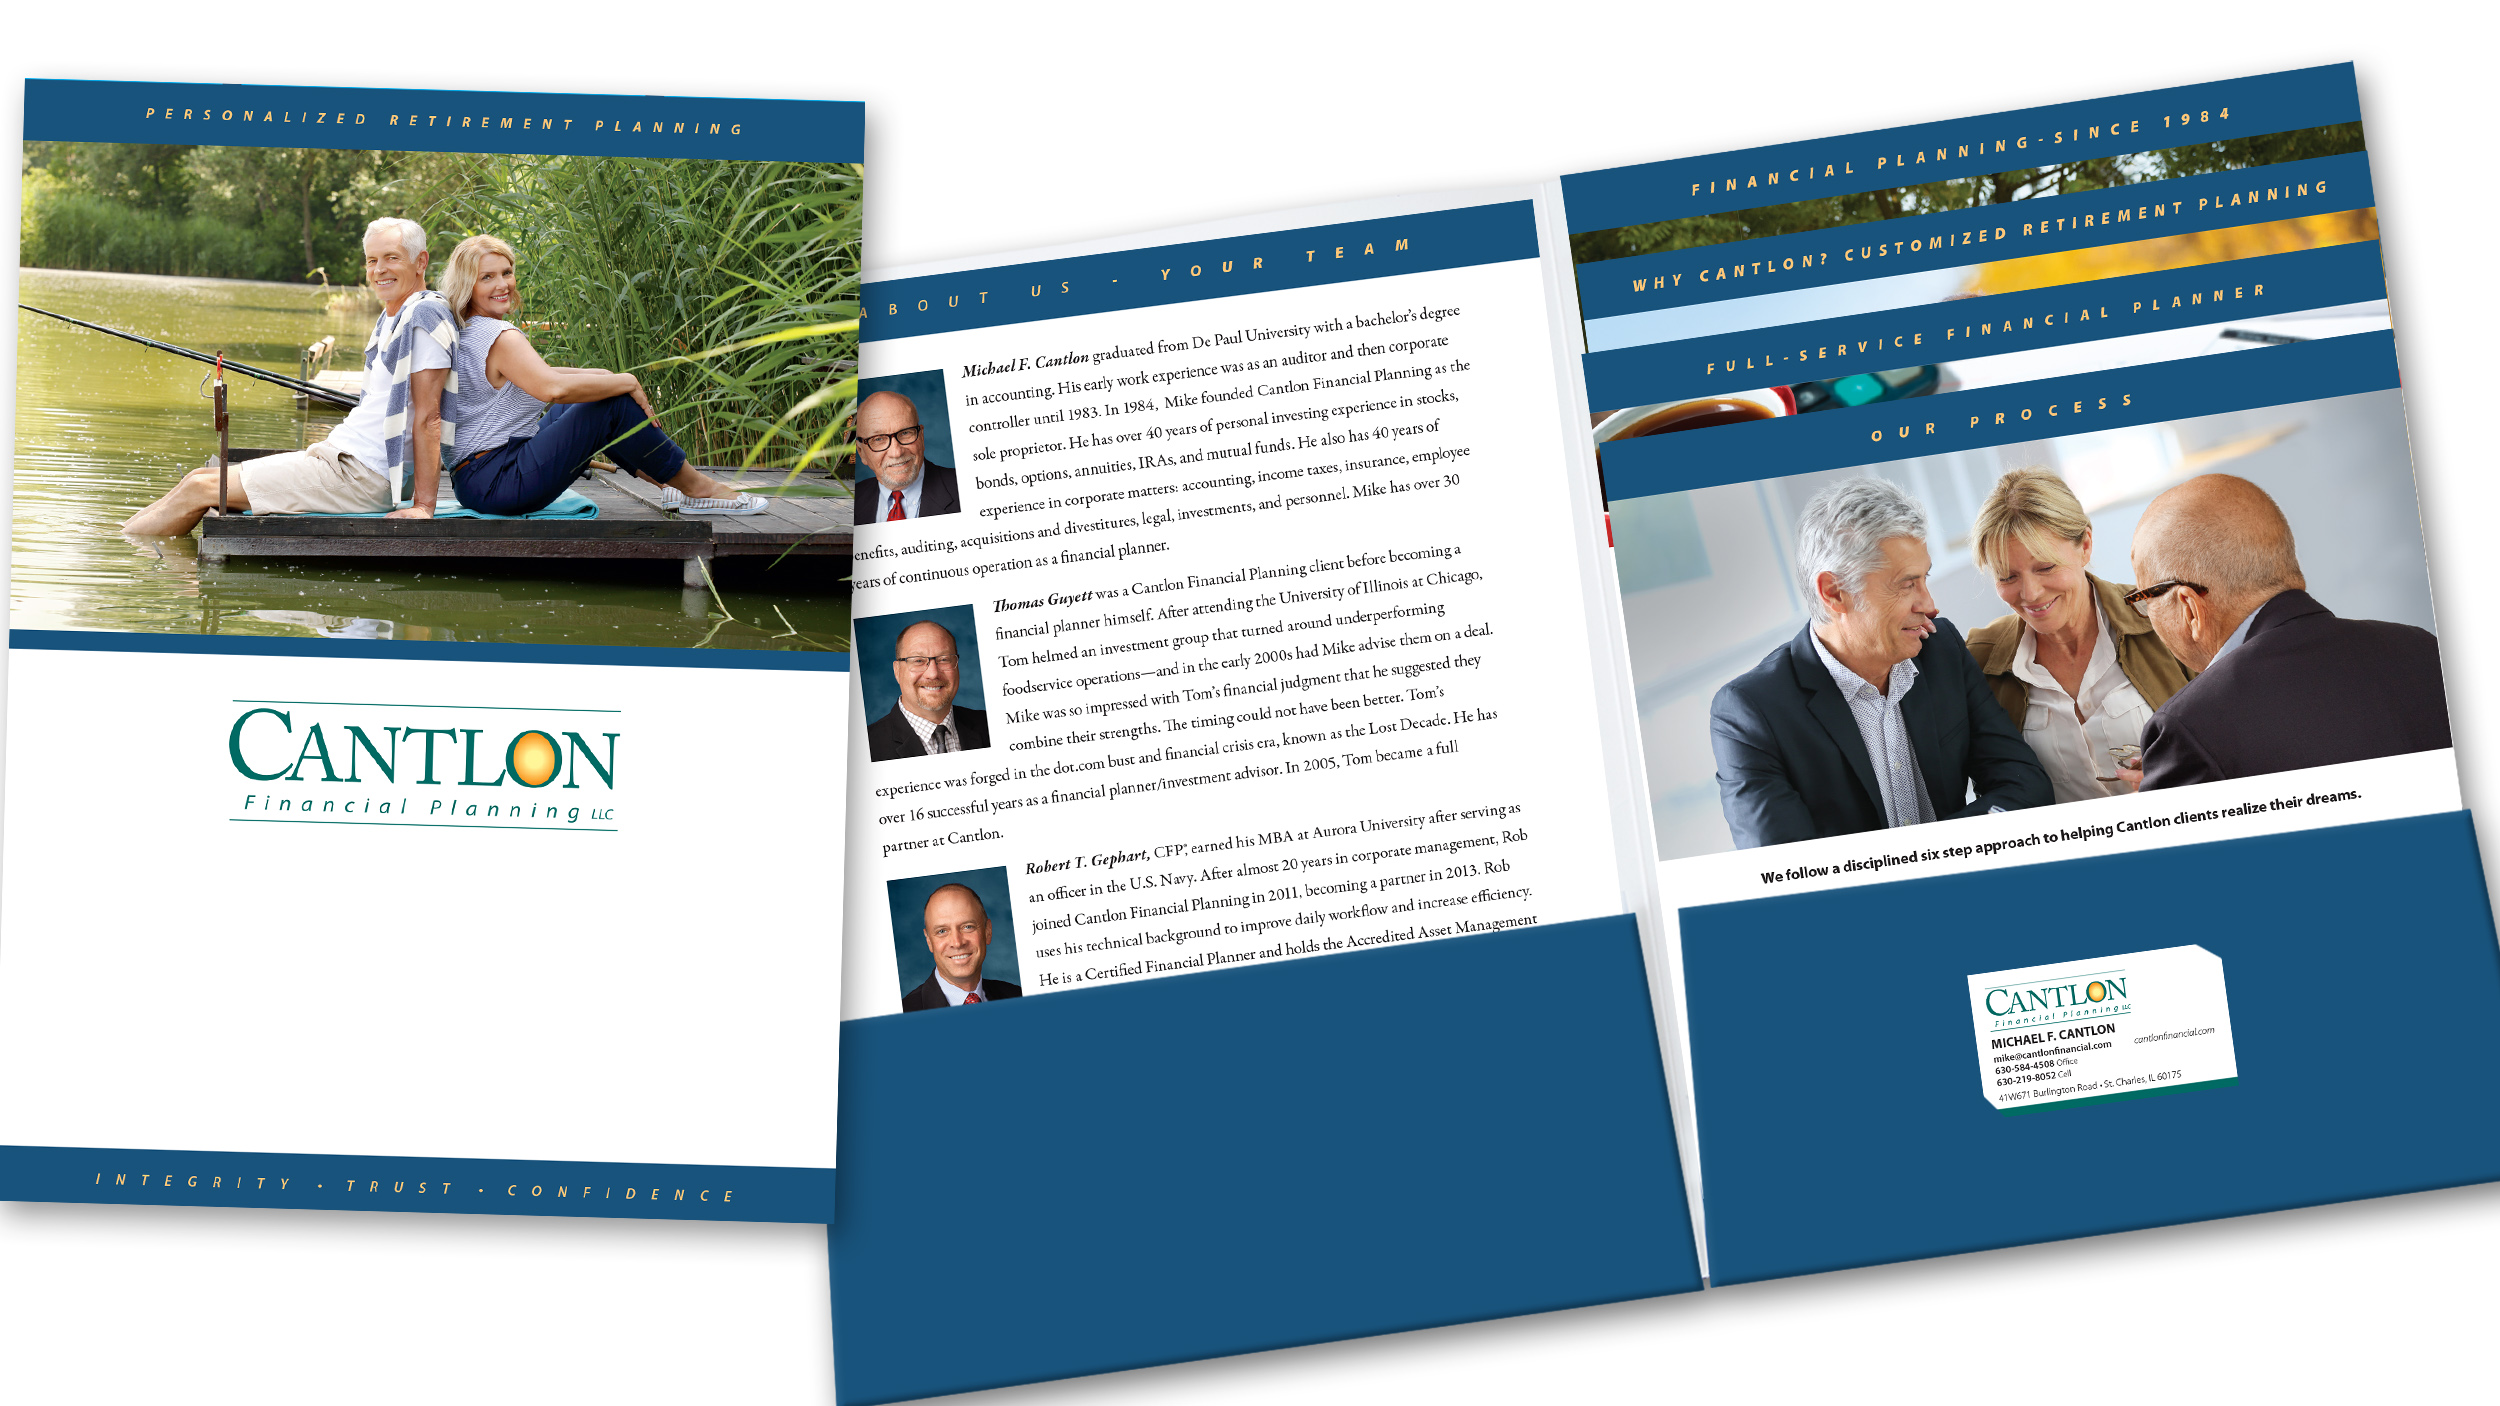 Cantlon-Financial-Planning-brochure-Collateral-Material.jpg